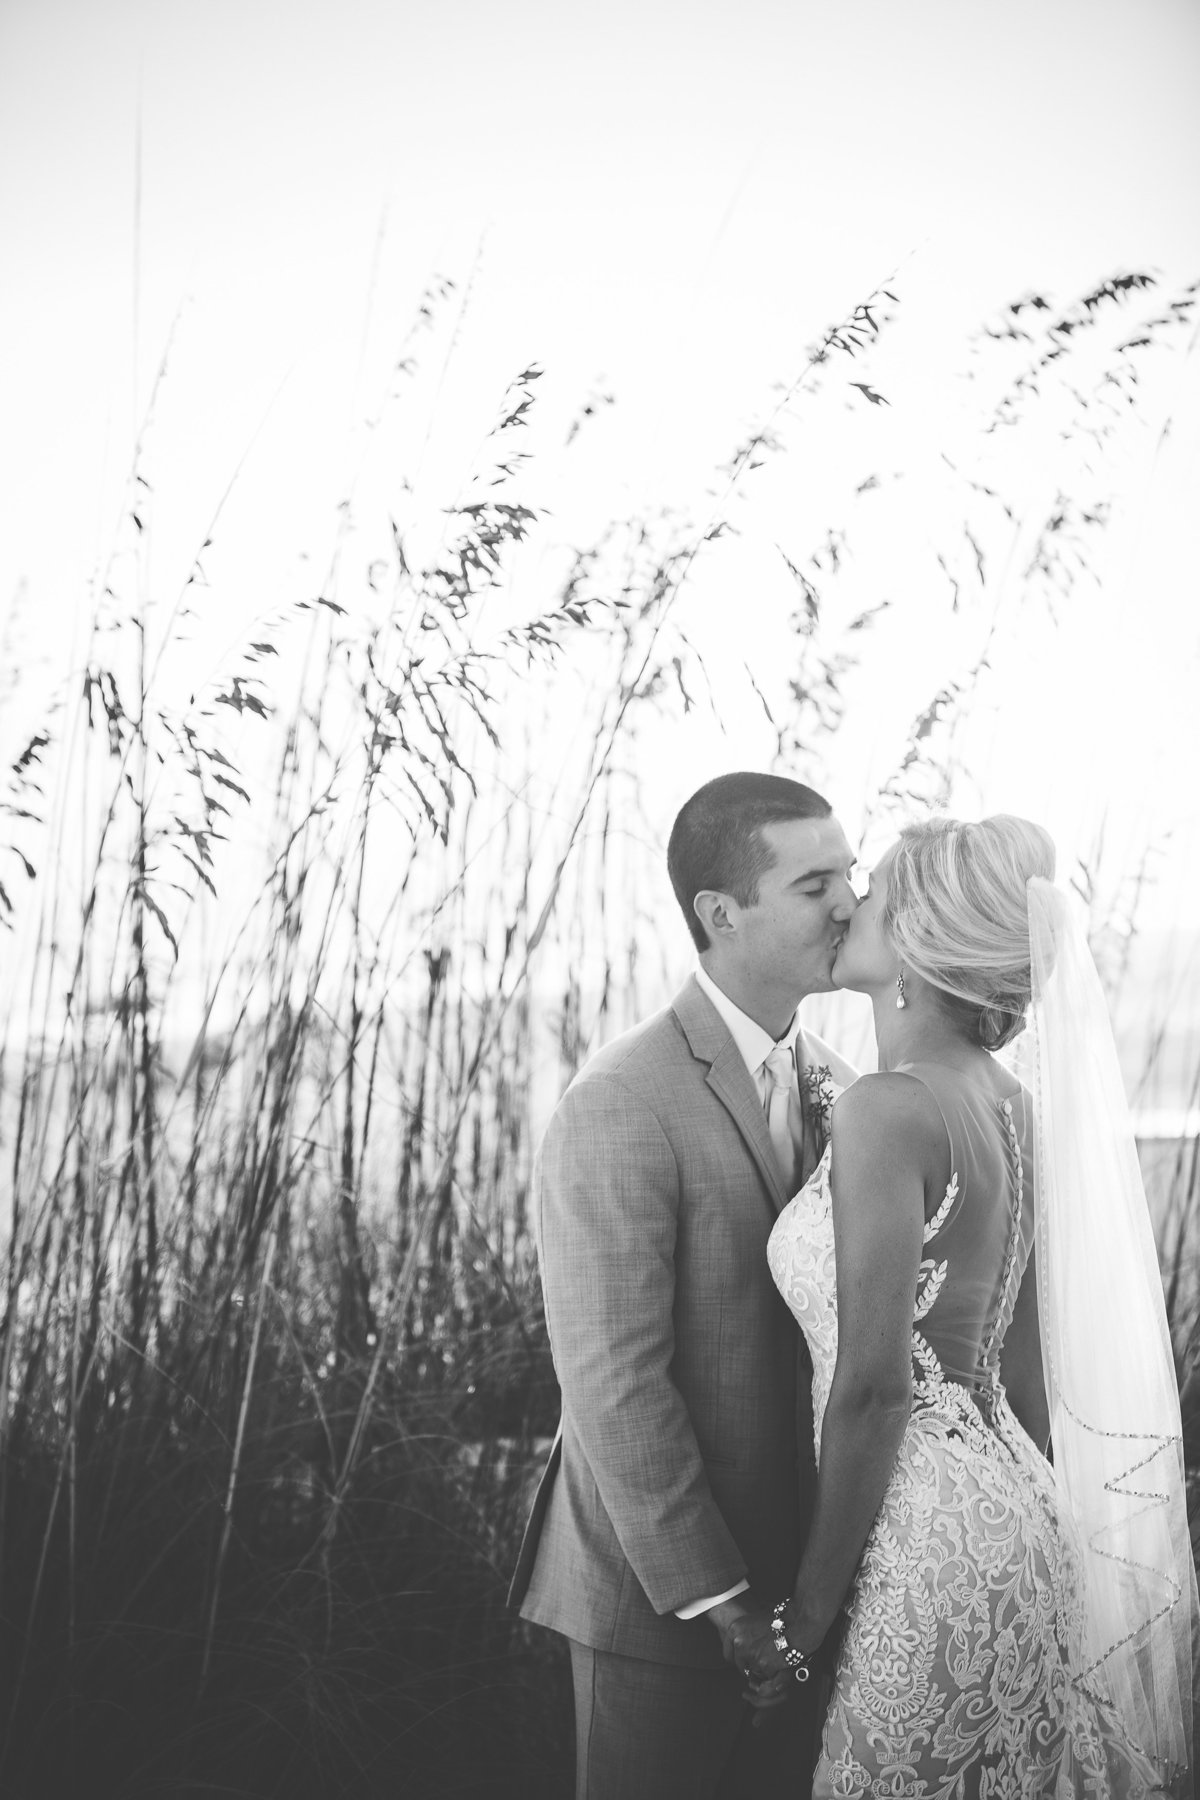 Destination-Beach-Wedding-Desgin-Florida-Jessica-Lea-IMG-1154